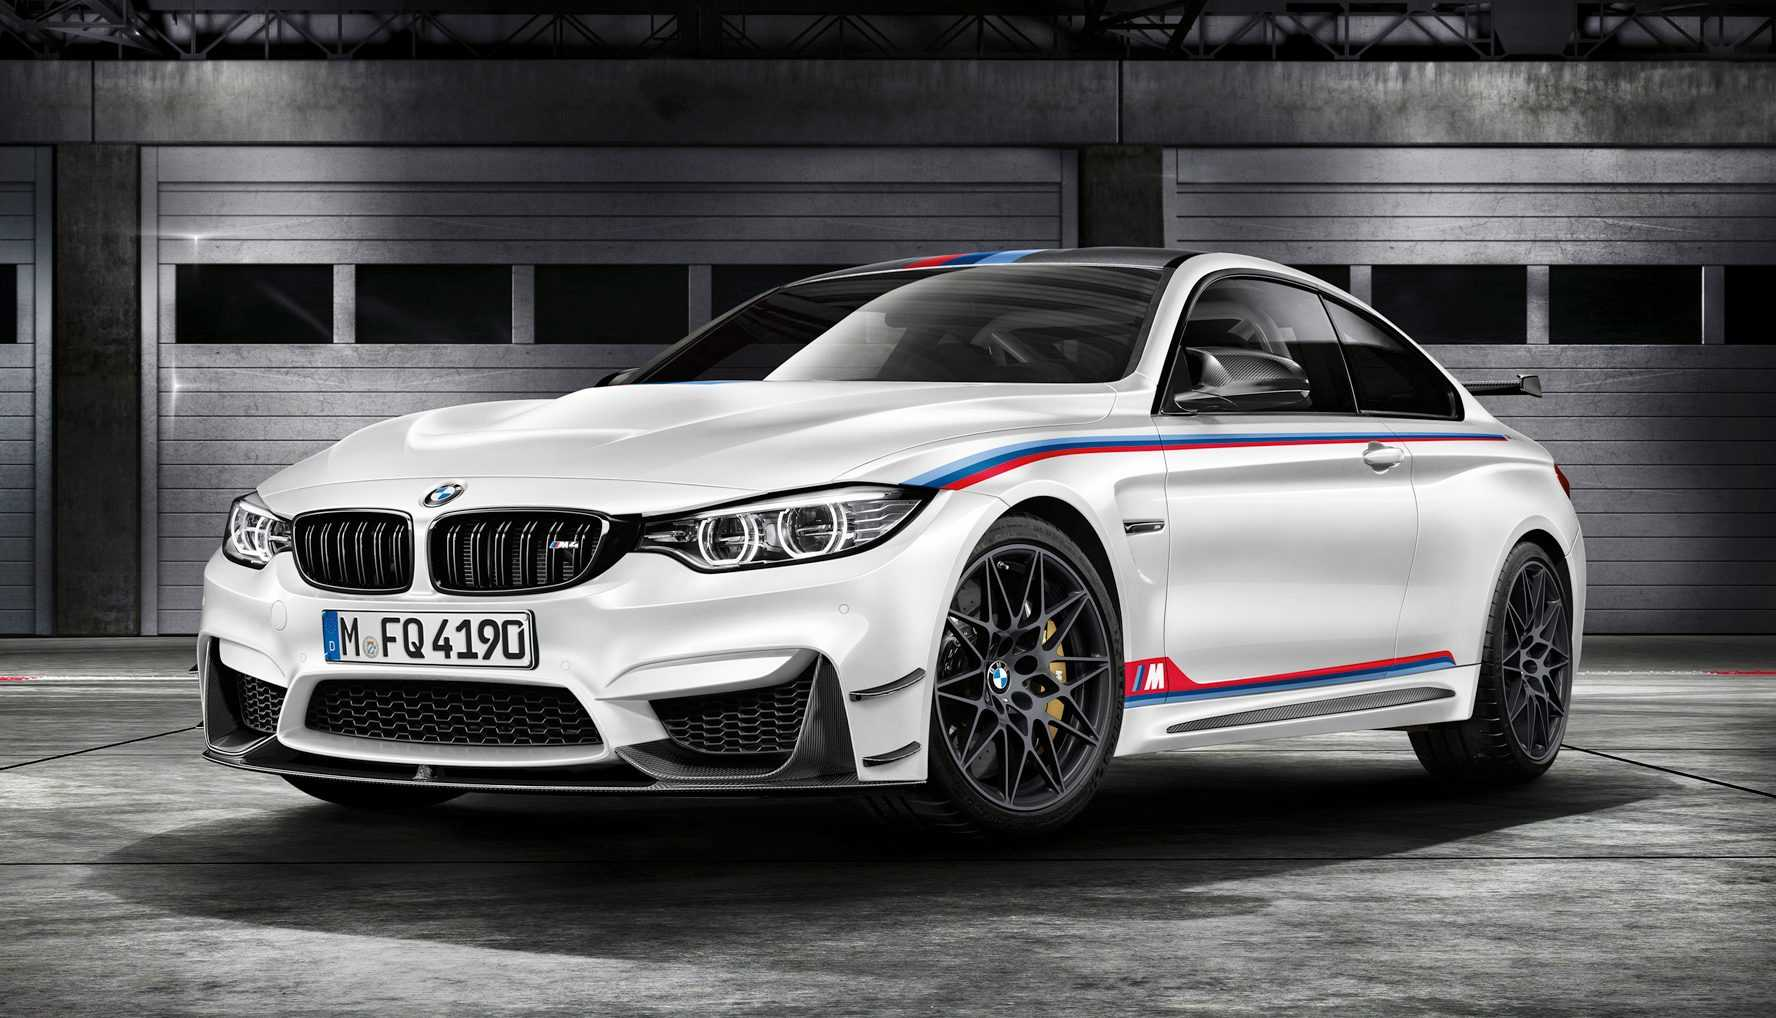 BMW M4 DTM Champion Edition is a Race Car Designed for the Streets